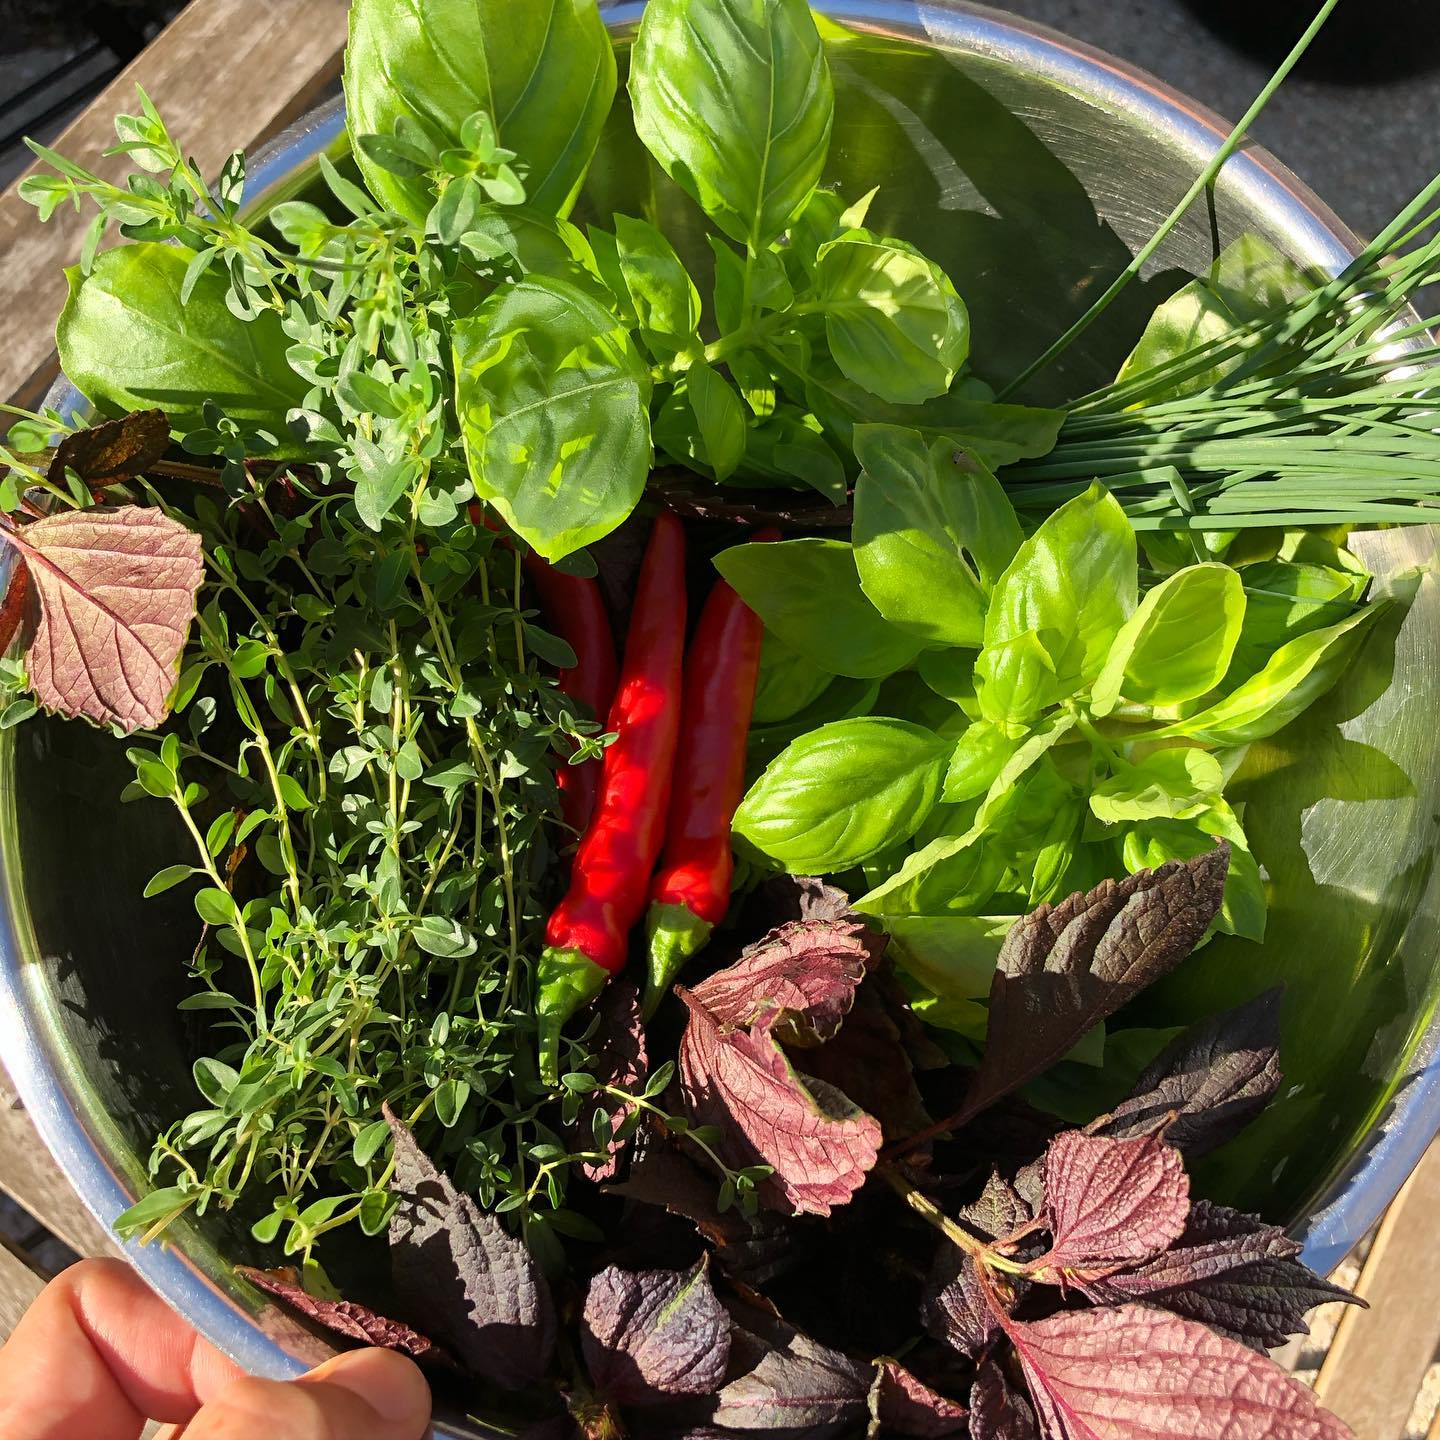 Late summer's bounty from the rooftop garden. 🌿 join the whole family (of herbs) for brunch, glistening under the morning rays. This weekend we celebrate the labor of all of the many hands it takes to bring food to the table... farmers, delivery people, prep cooks, dishwashers, and supportive friends and family. ❤️ #laborday #herbgarden #rooftopgarden #baltimorebrunch #knowyourfarmer #eatlocalbaltimore #madeinbaltimore